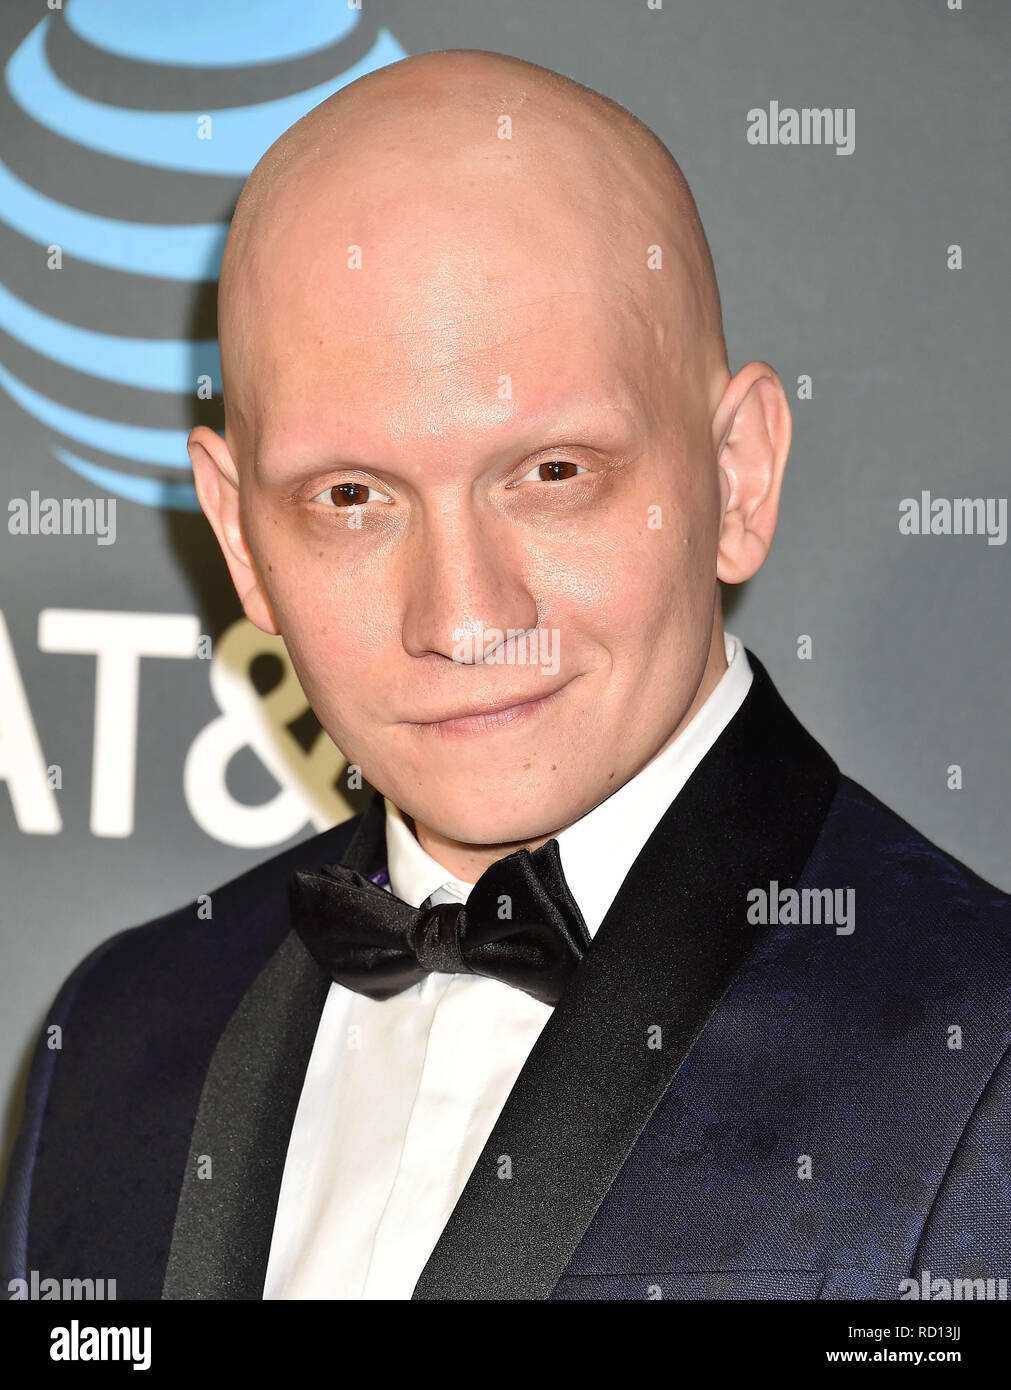 anthony carrigan game of thrones